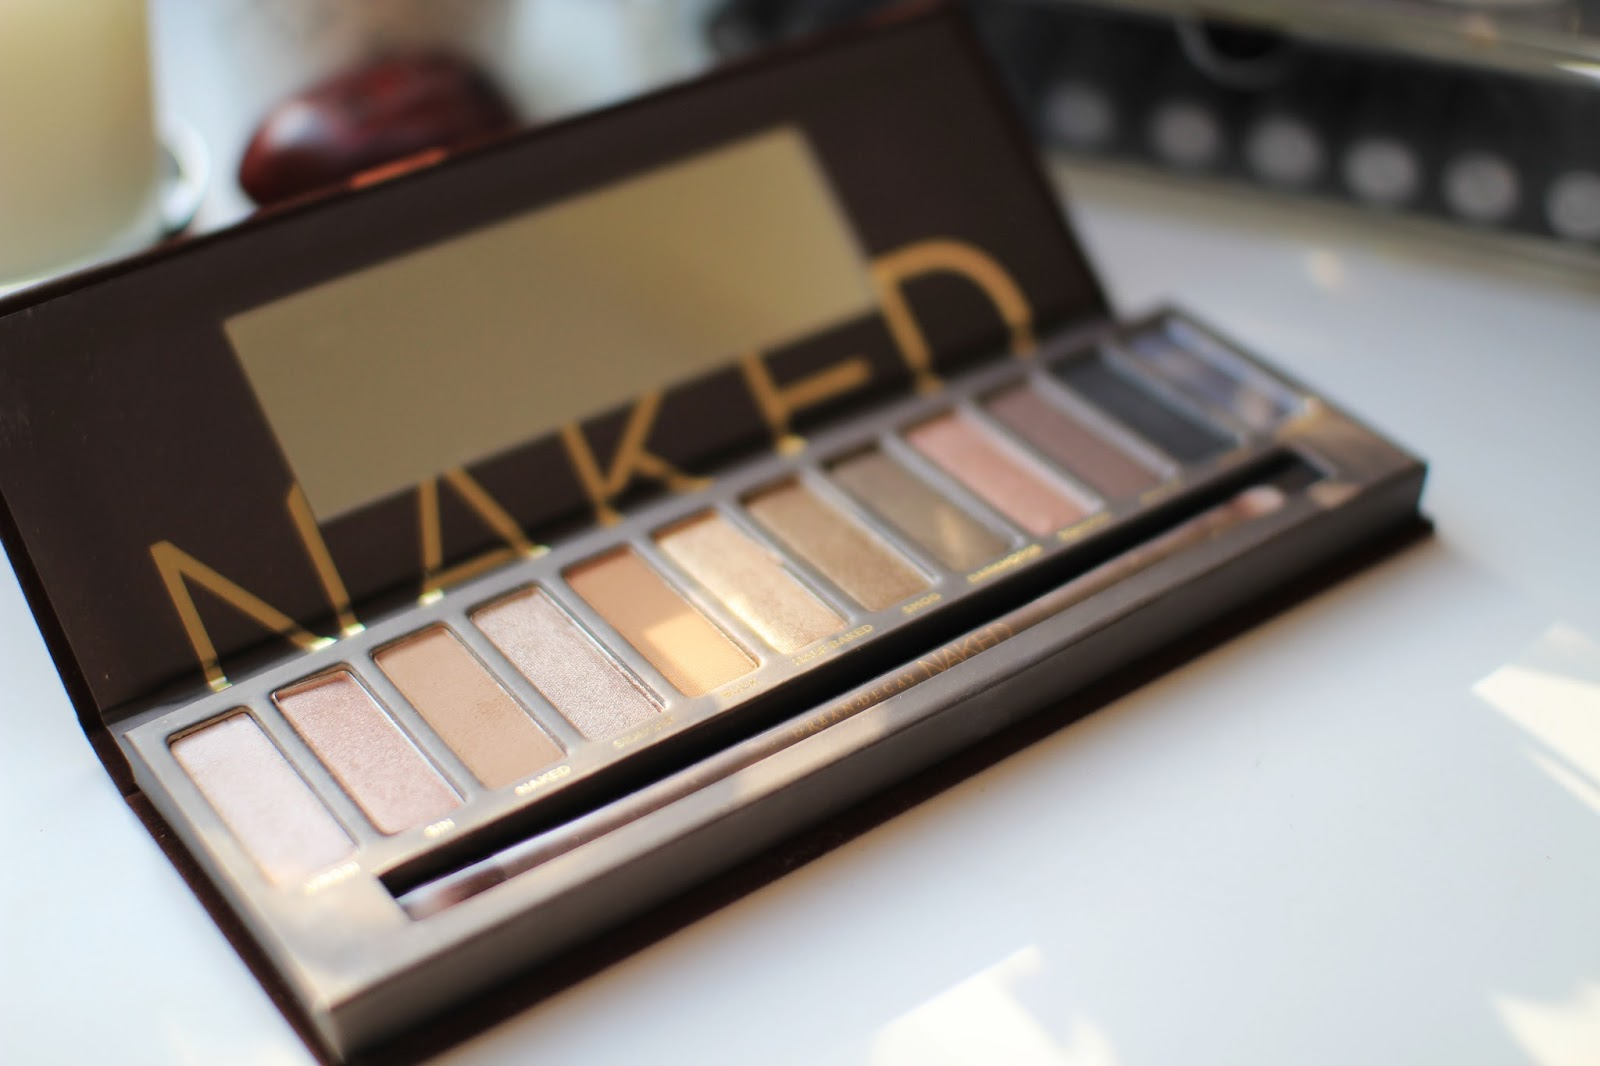 The Urban Decay Naked Palette